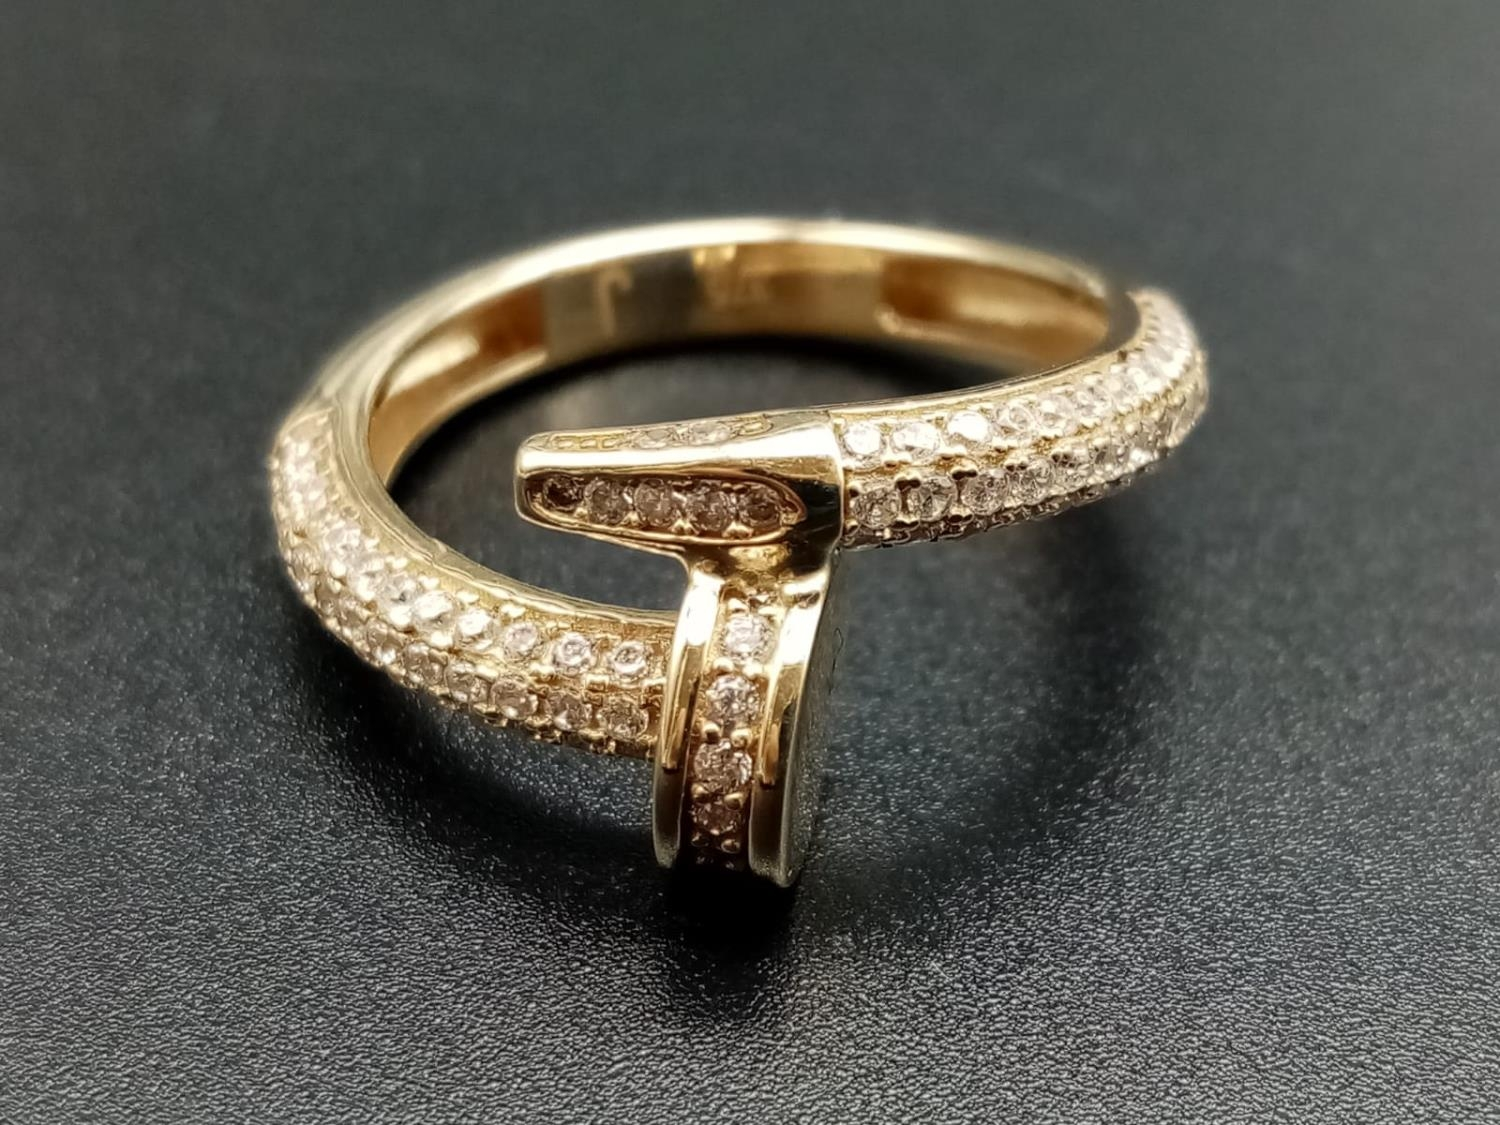 9CT YELLOW GOLD CZ SET CARTIER STYLE RING, WEIGHT 3.9G SIZE P1/2